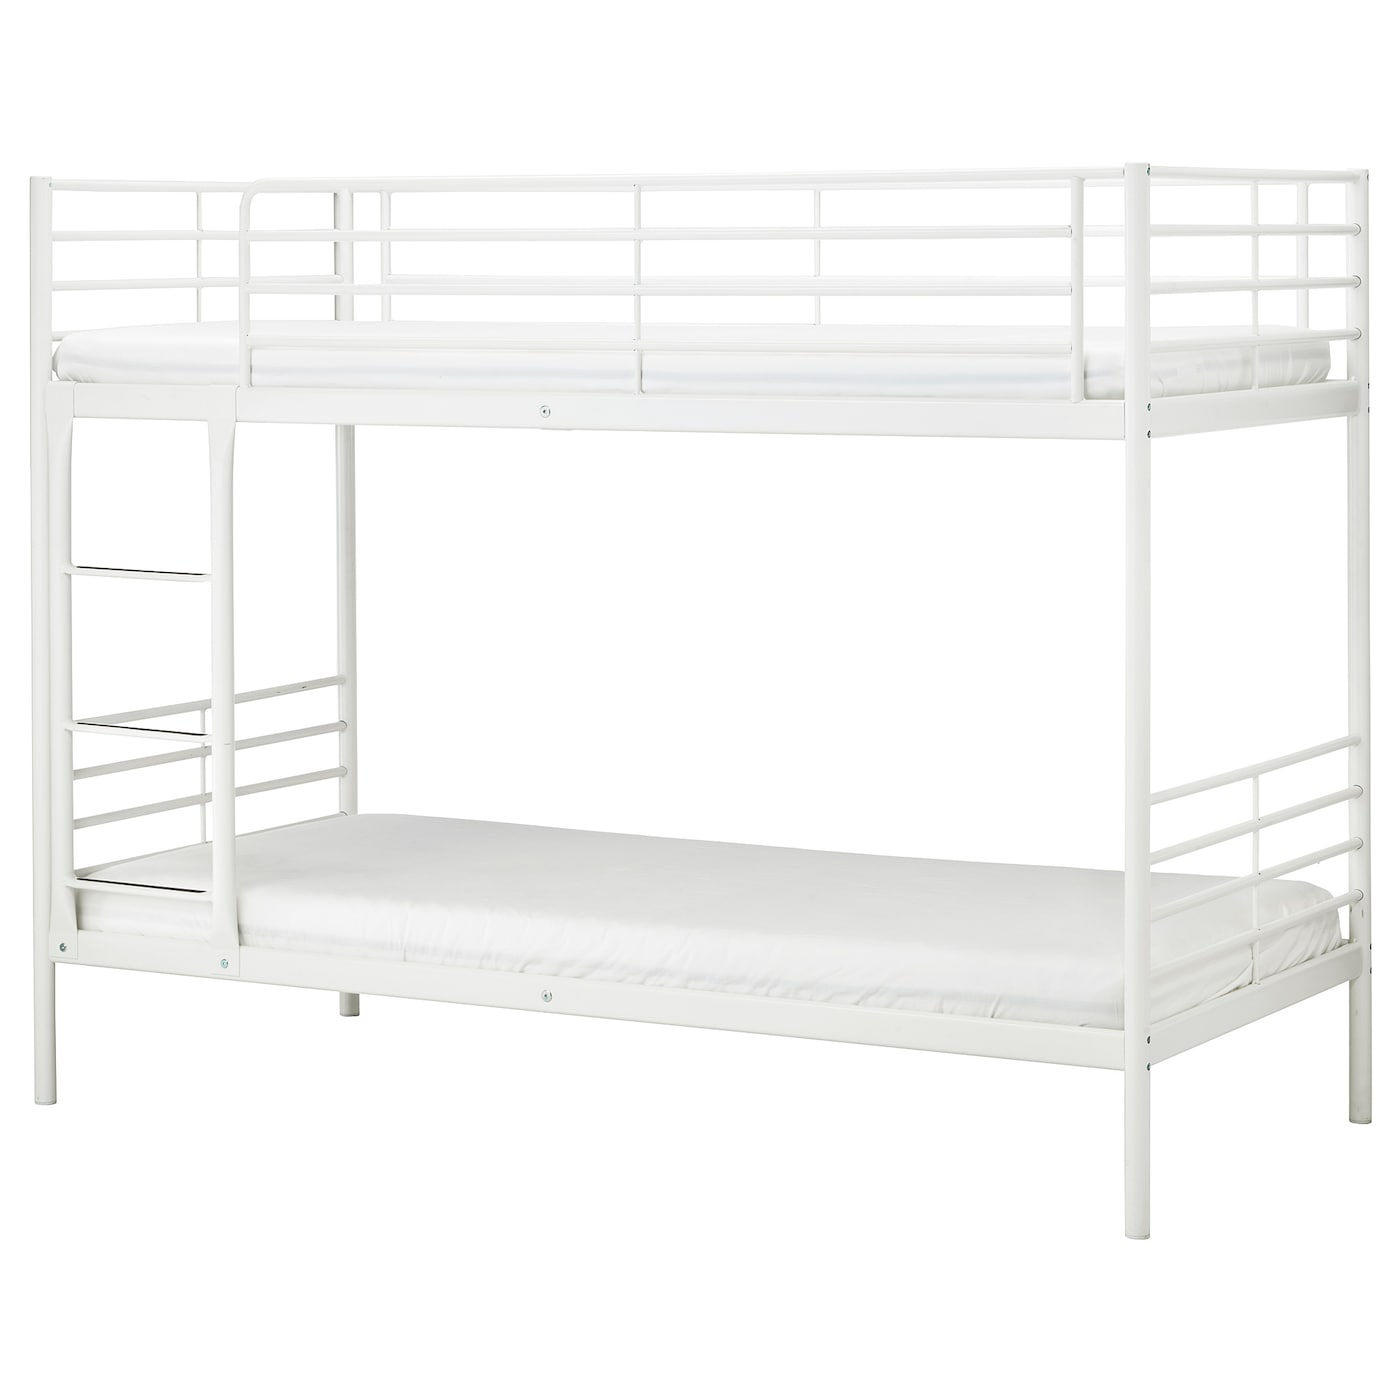 IKEA SVÄRTA bunk bed frame A good solution where space is limited.